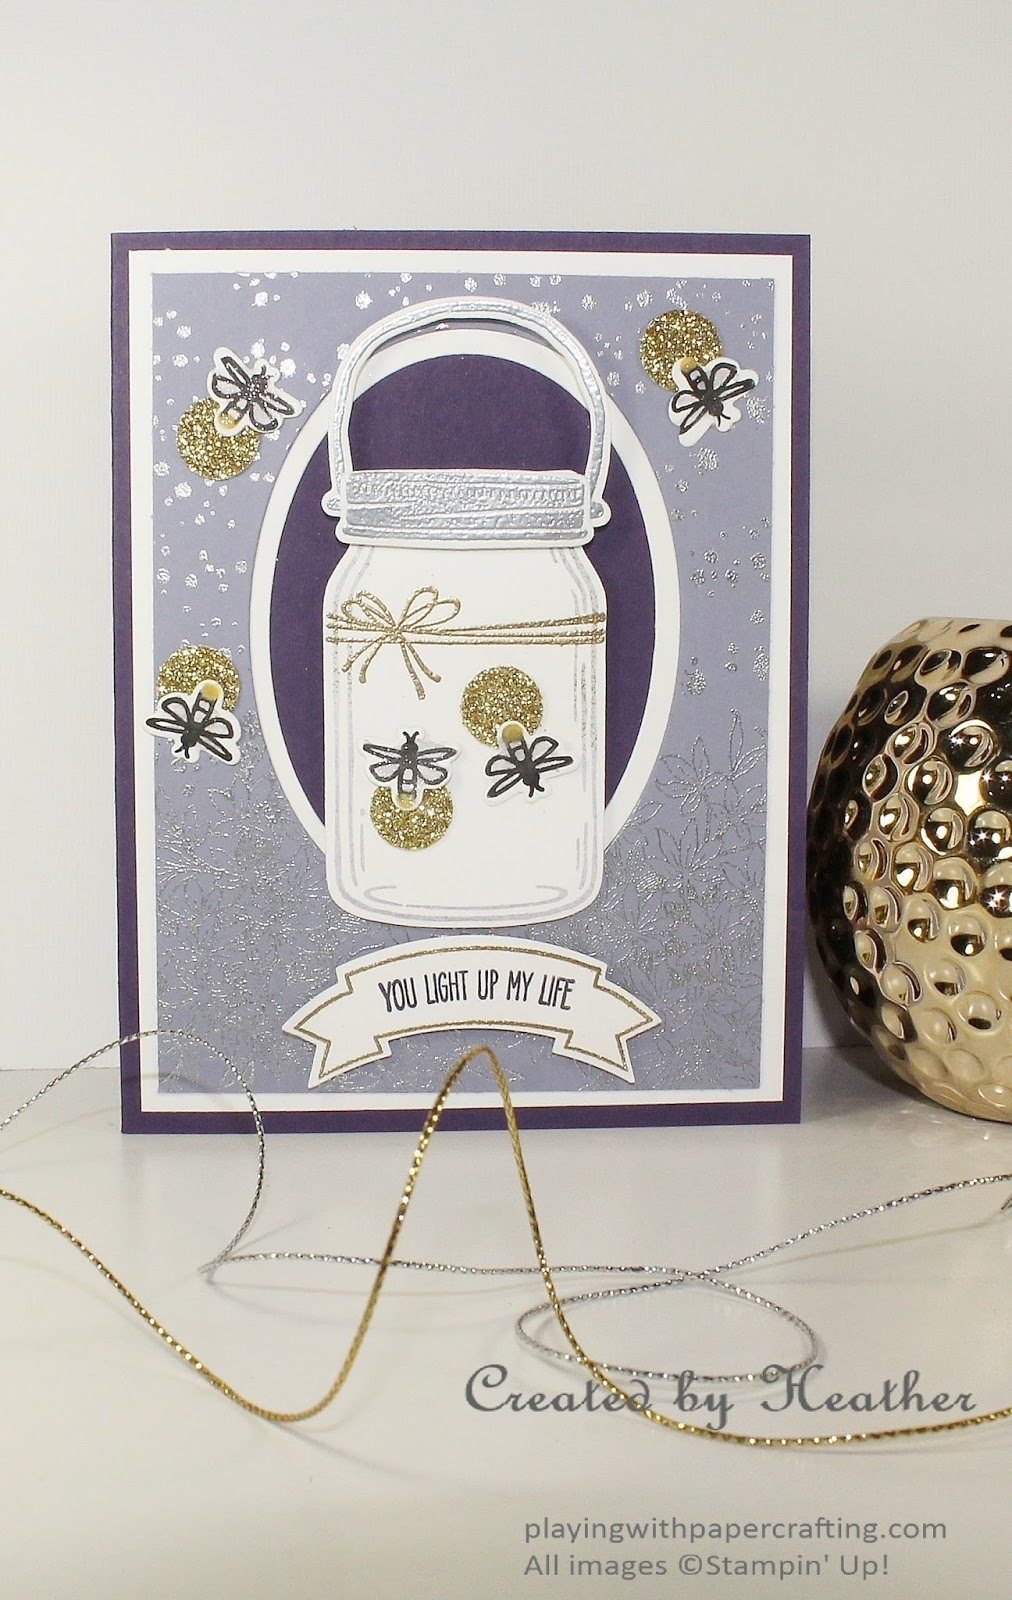 Playing With Papercrafting Fireflies And Bucket Lists For Freshly